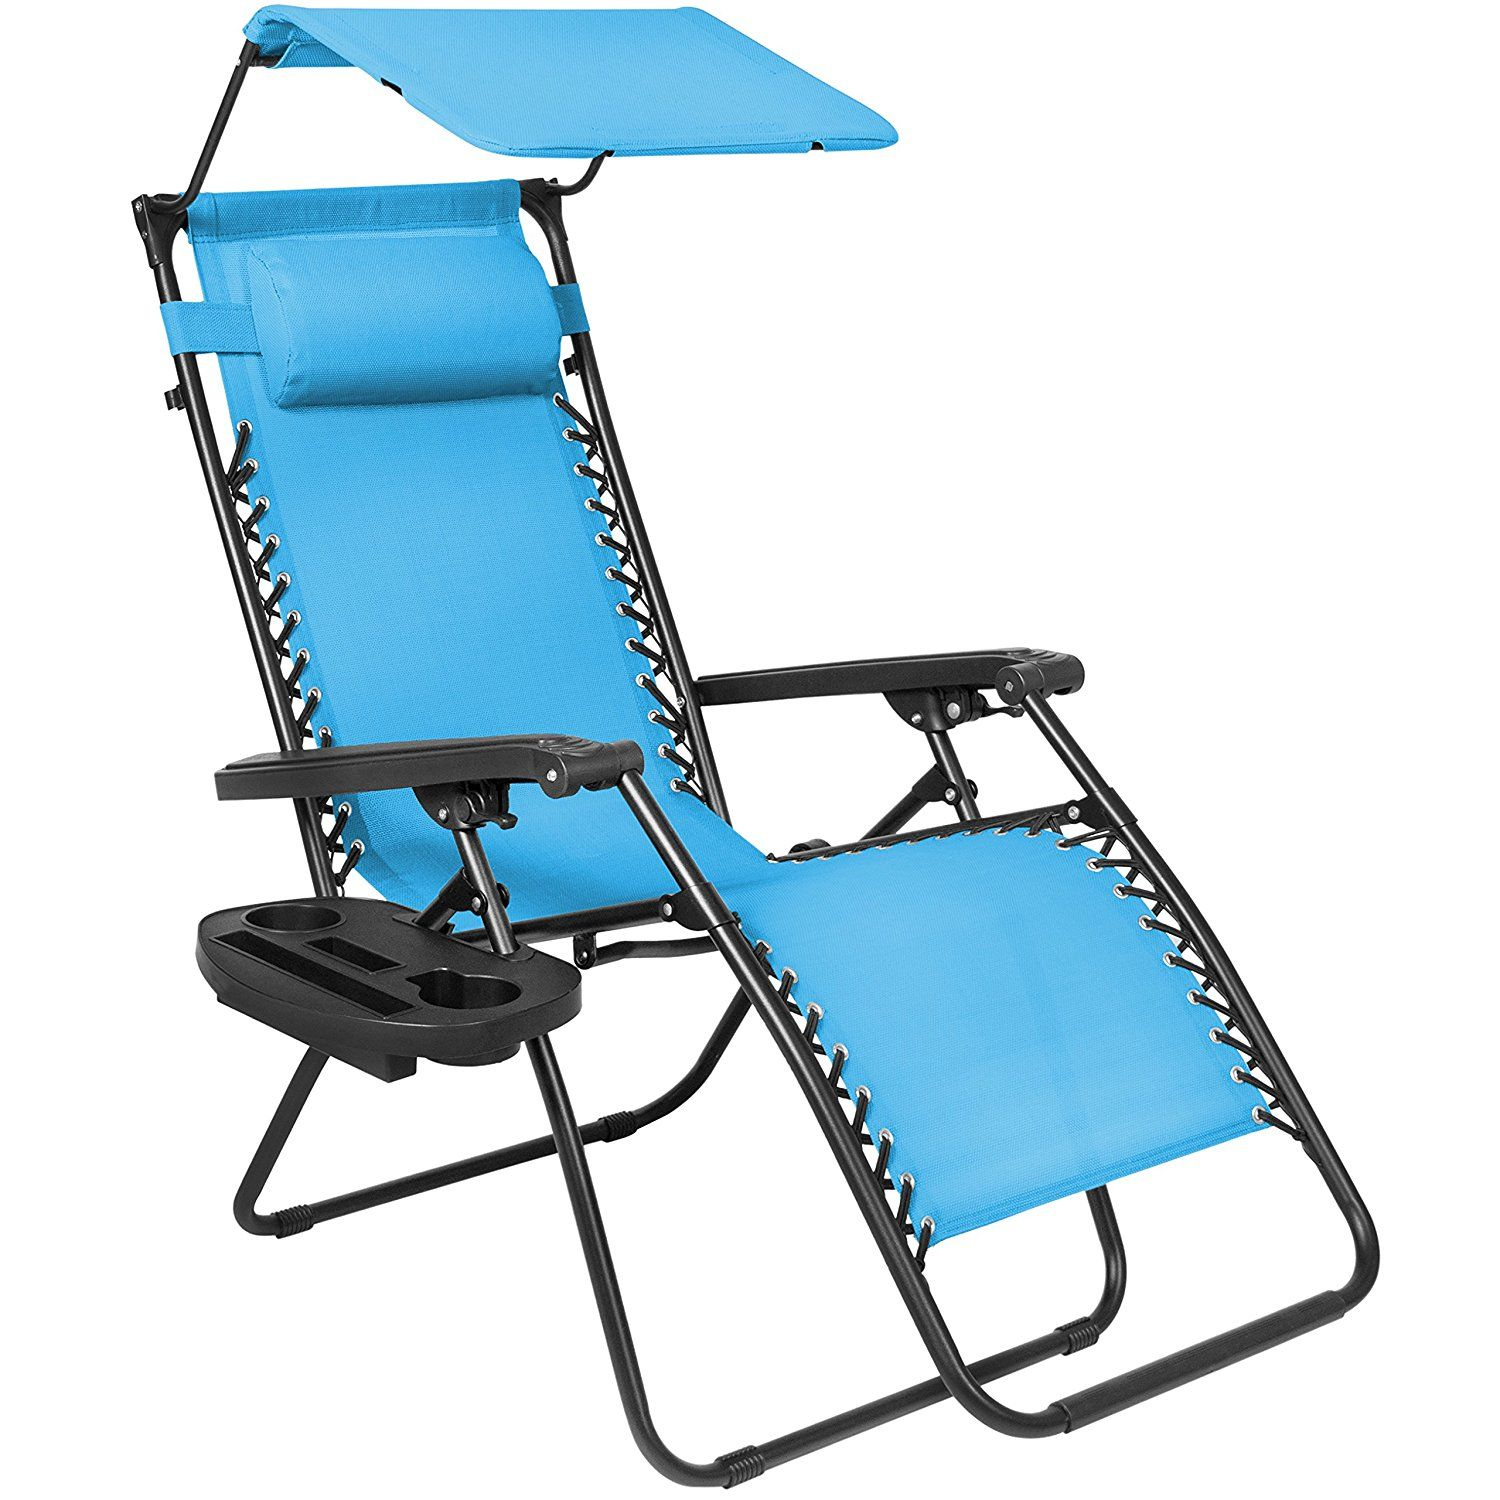 Amazon.com : Best Choice Products Folding Zero Gravity Recliner Lounge Chair  W/ Canopy